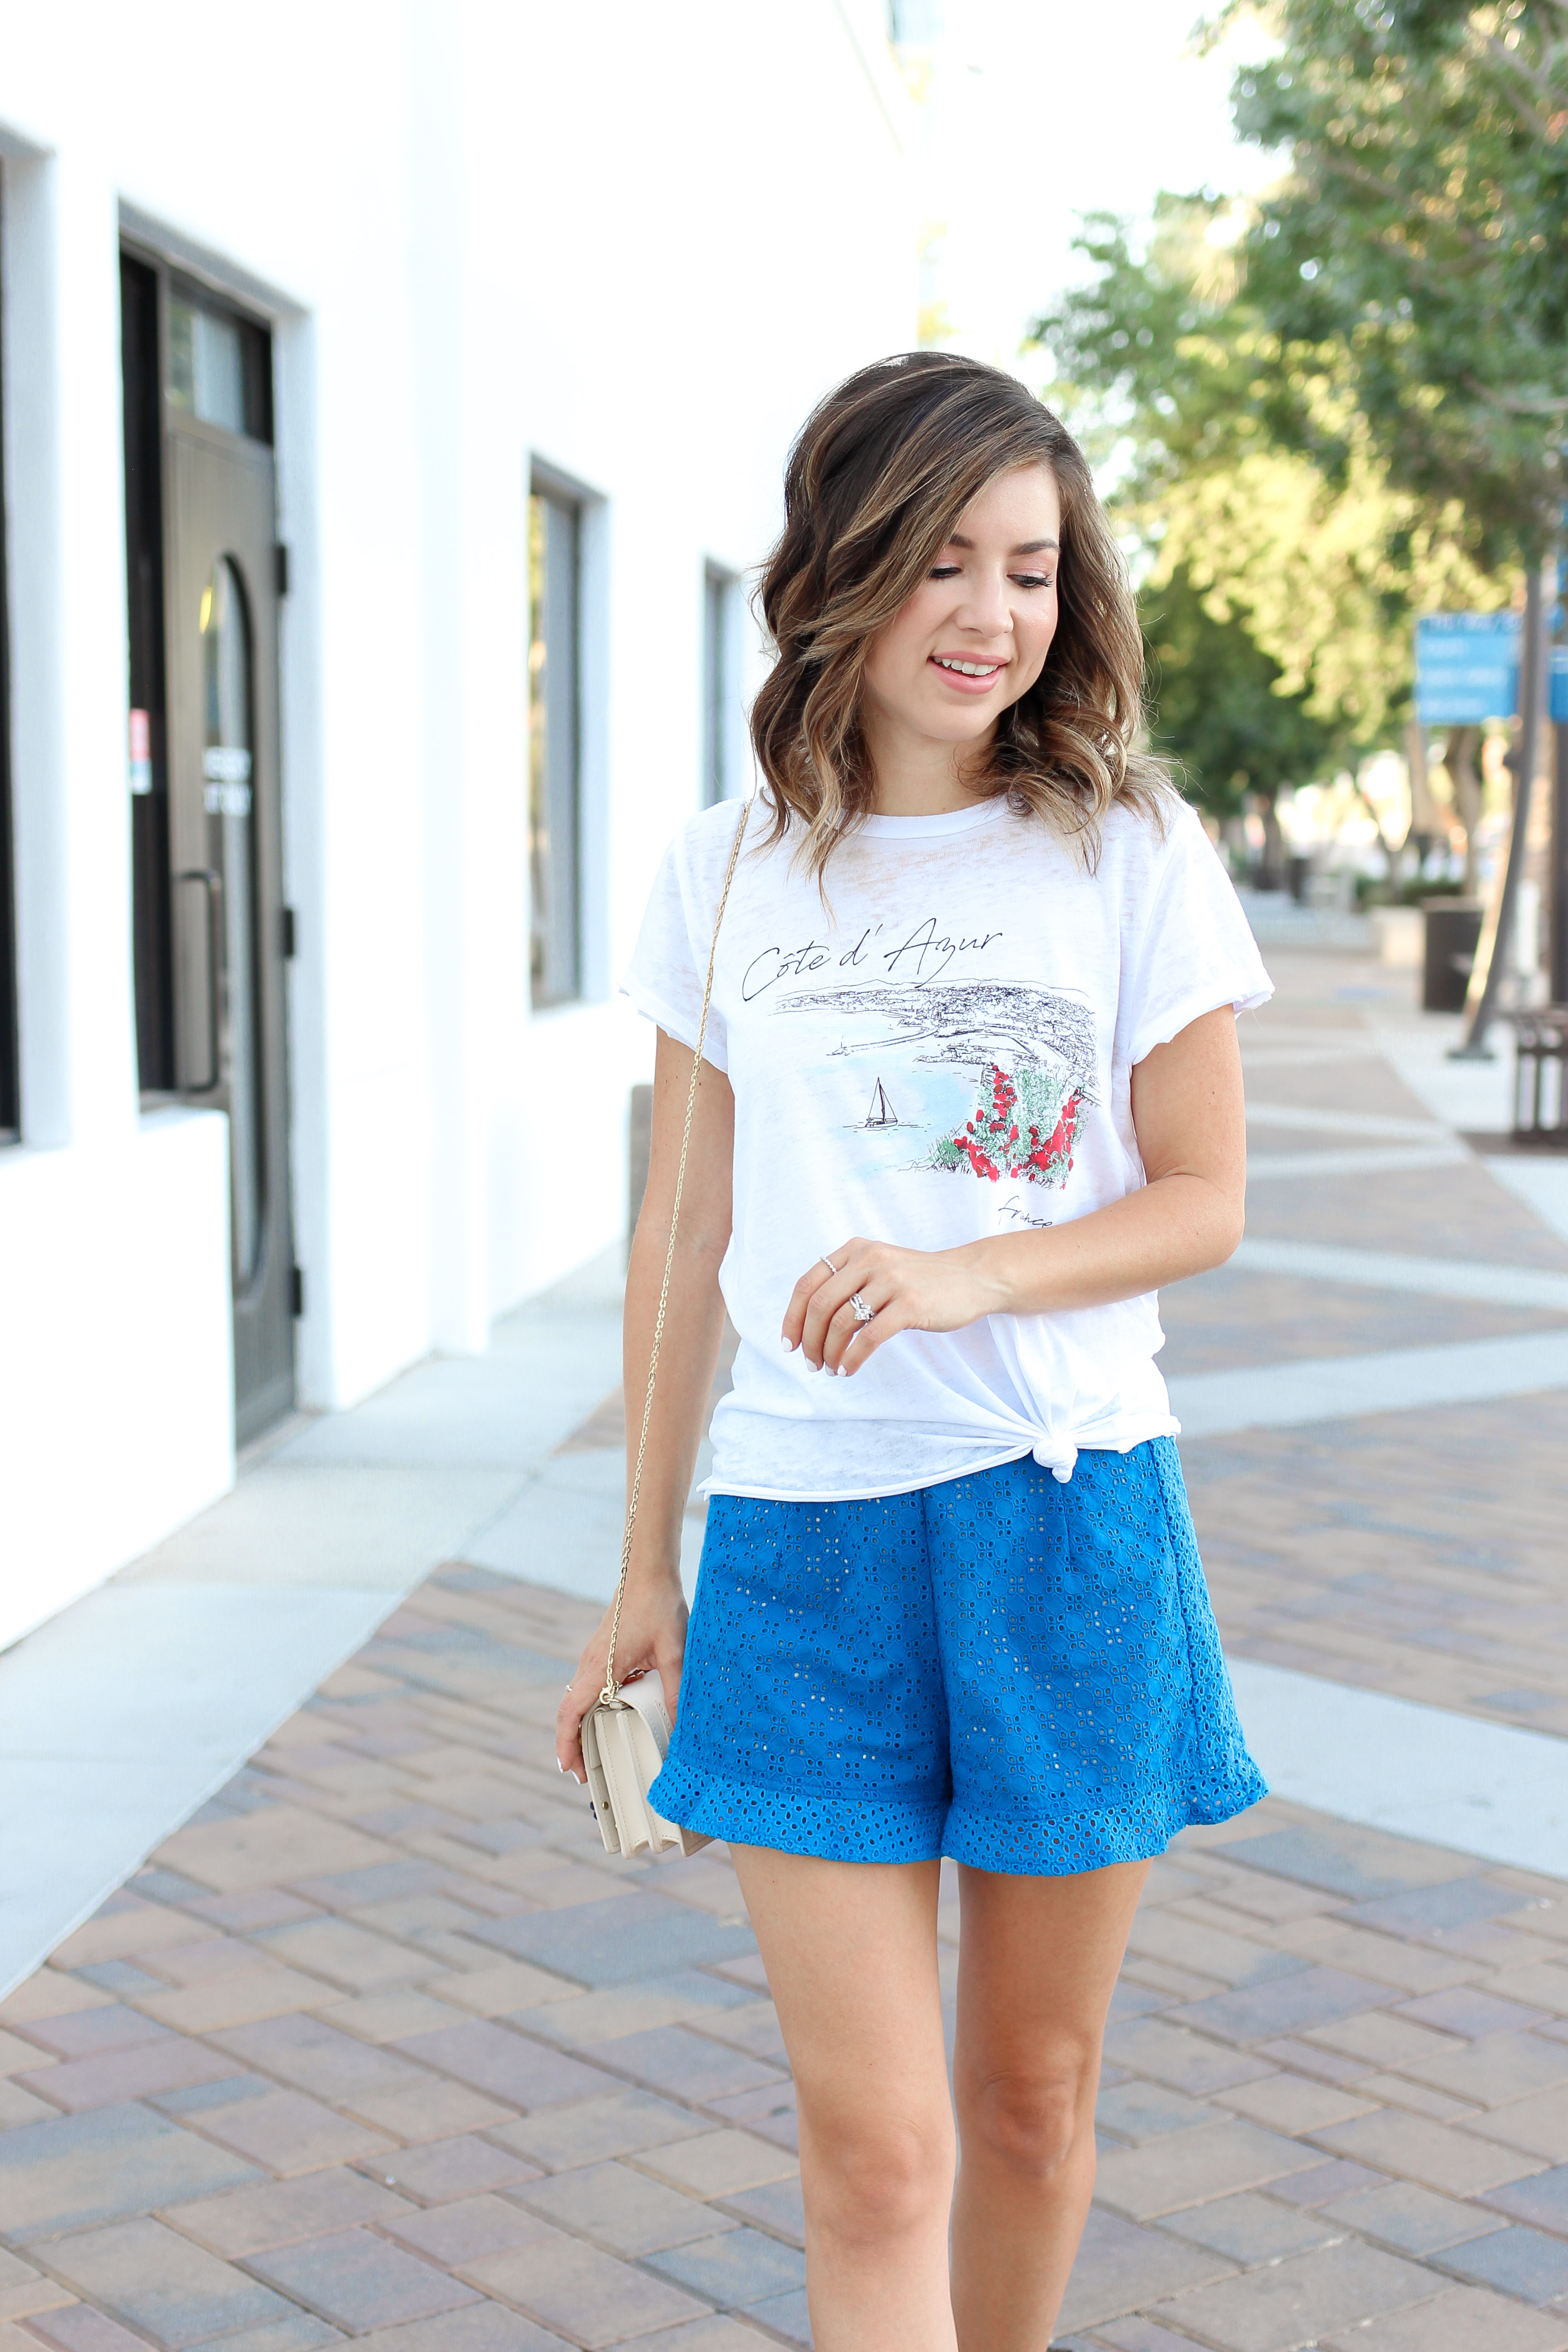 Simply Sutter Summer Style Ruffle Shorts Tee Shirt Outfit 5733